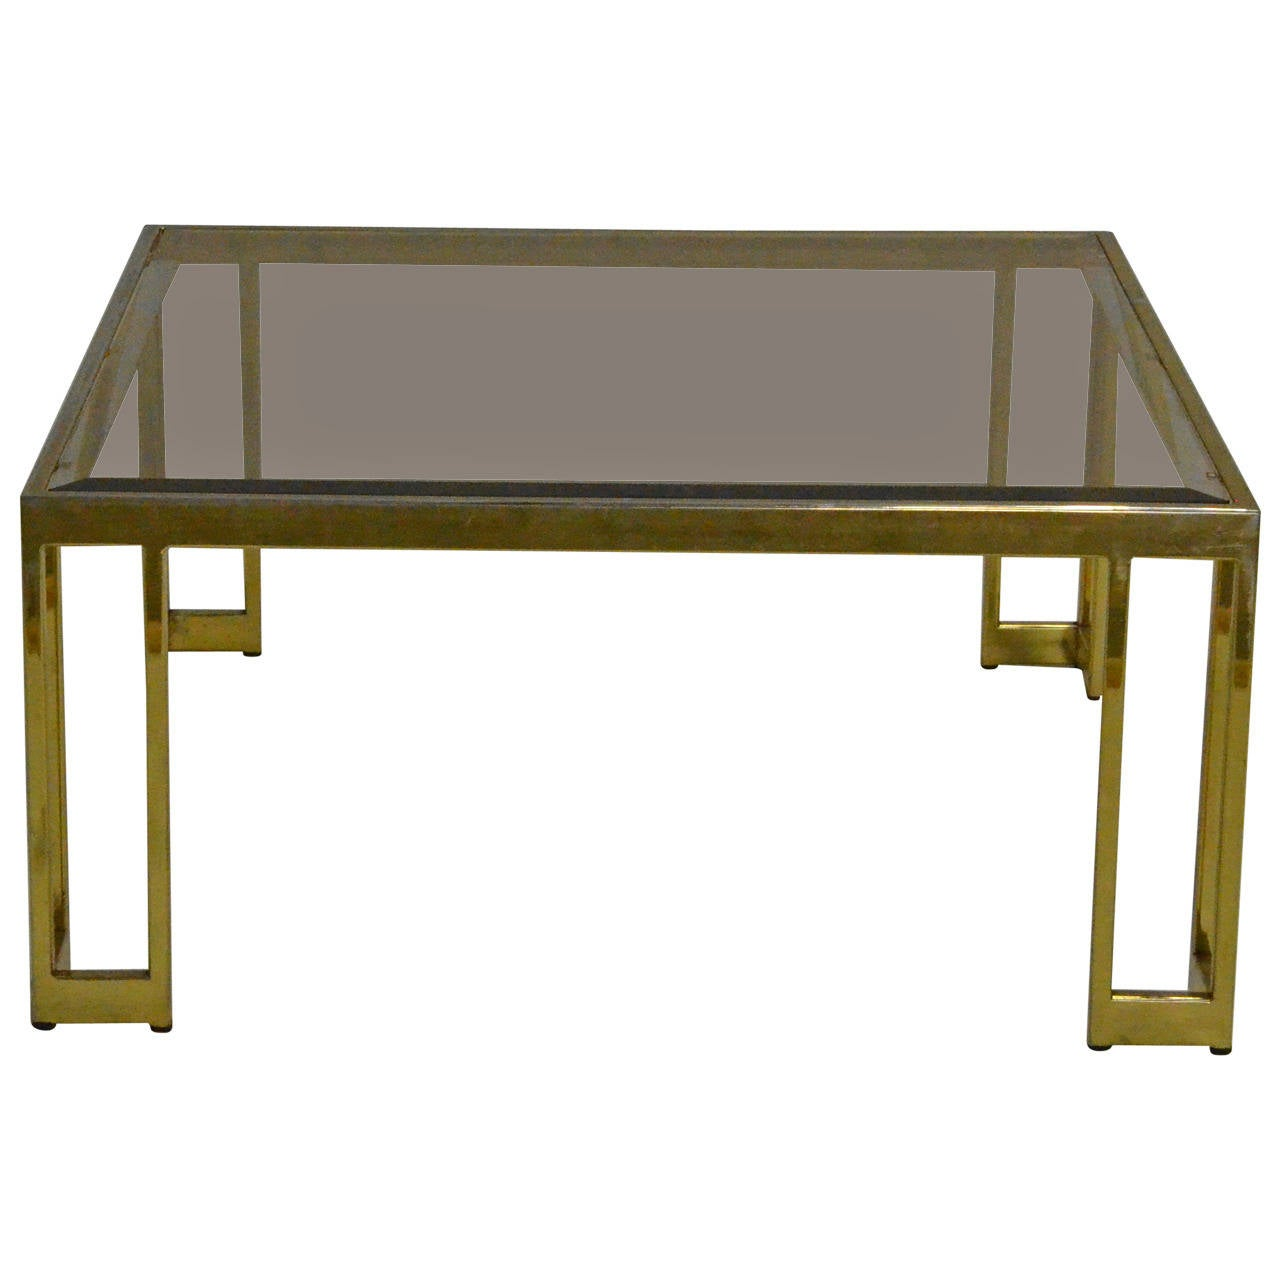 Milo Baughman Brass And Smoke Glass Coffee Or Cocktail Table At 1stdibs